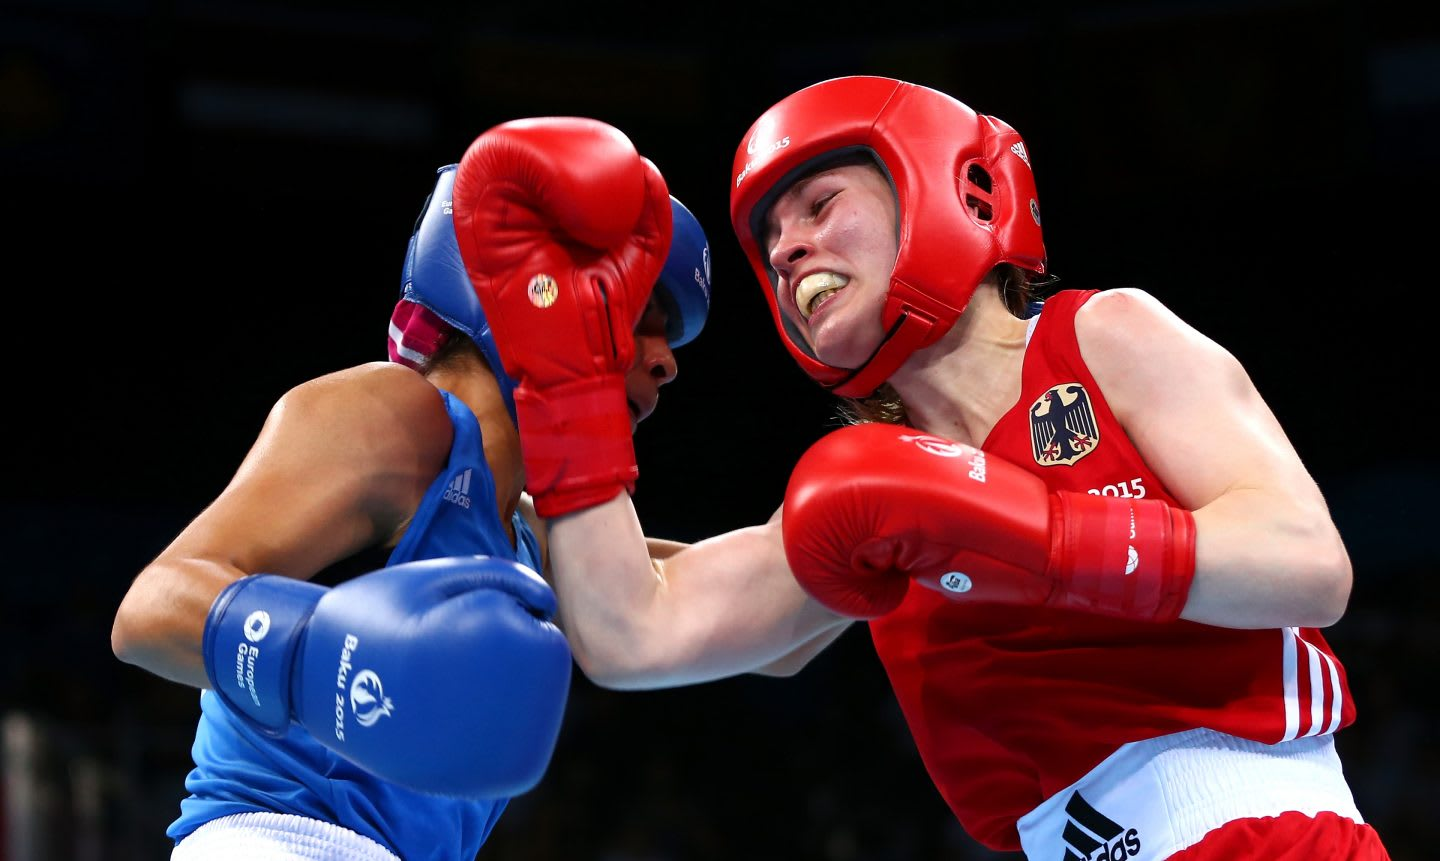 German female boxer Ornella Wahner wears a red headguard and gloves punches towards her opponent with a right uppercut. Gameplan A.